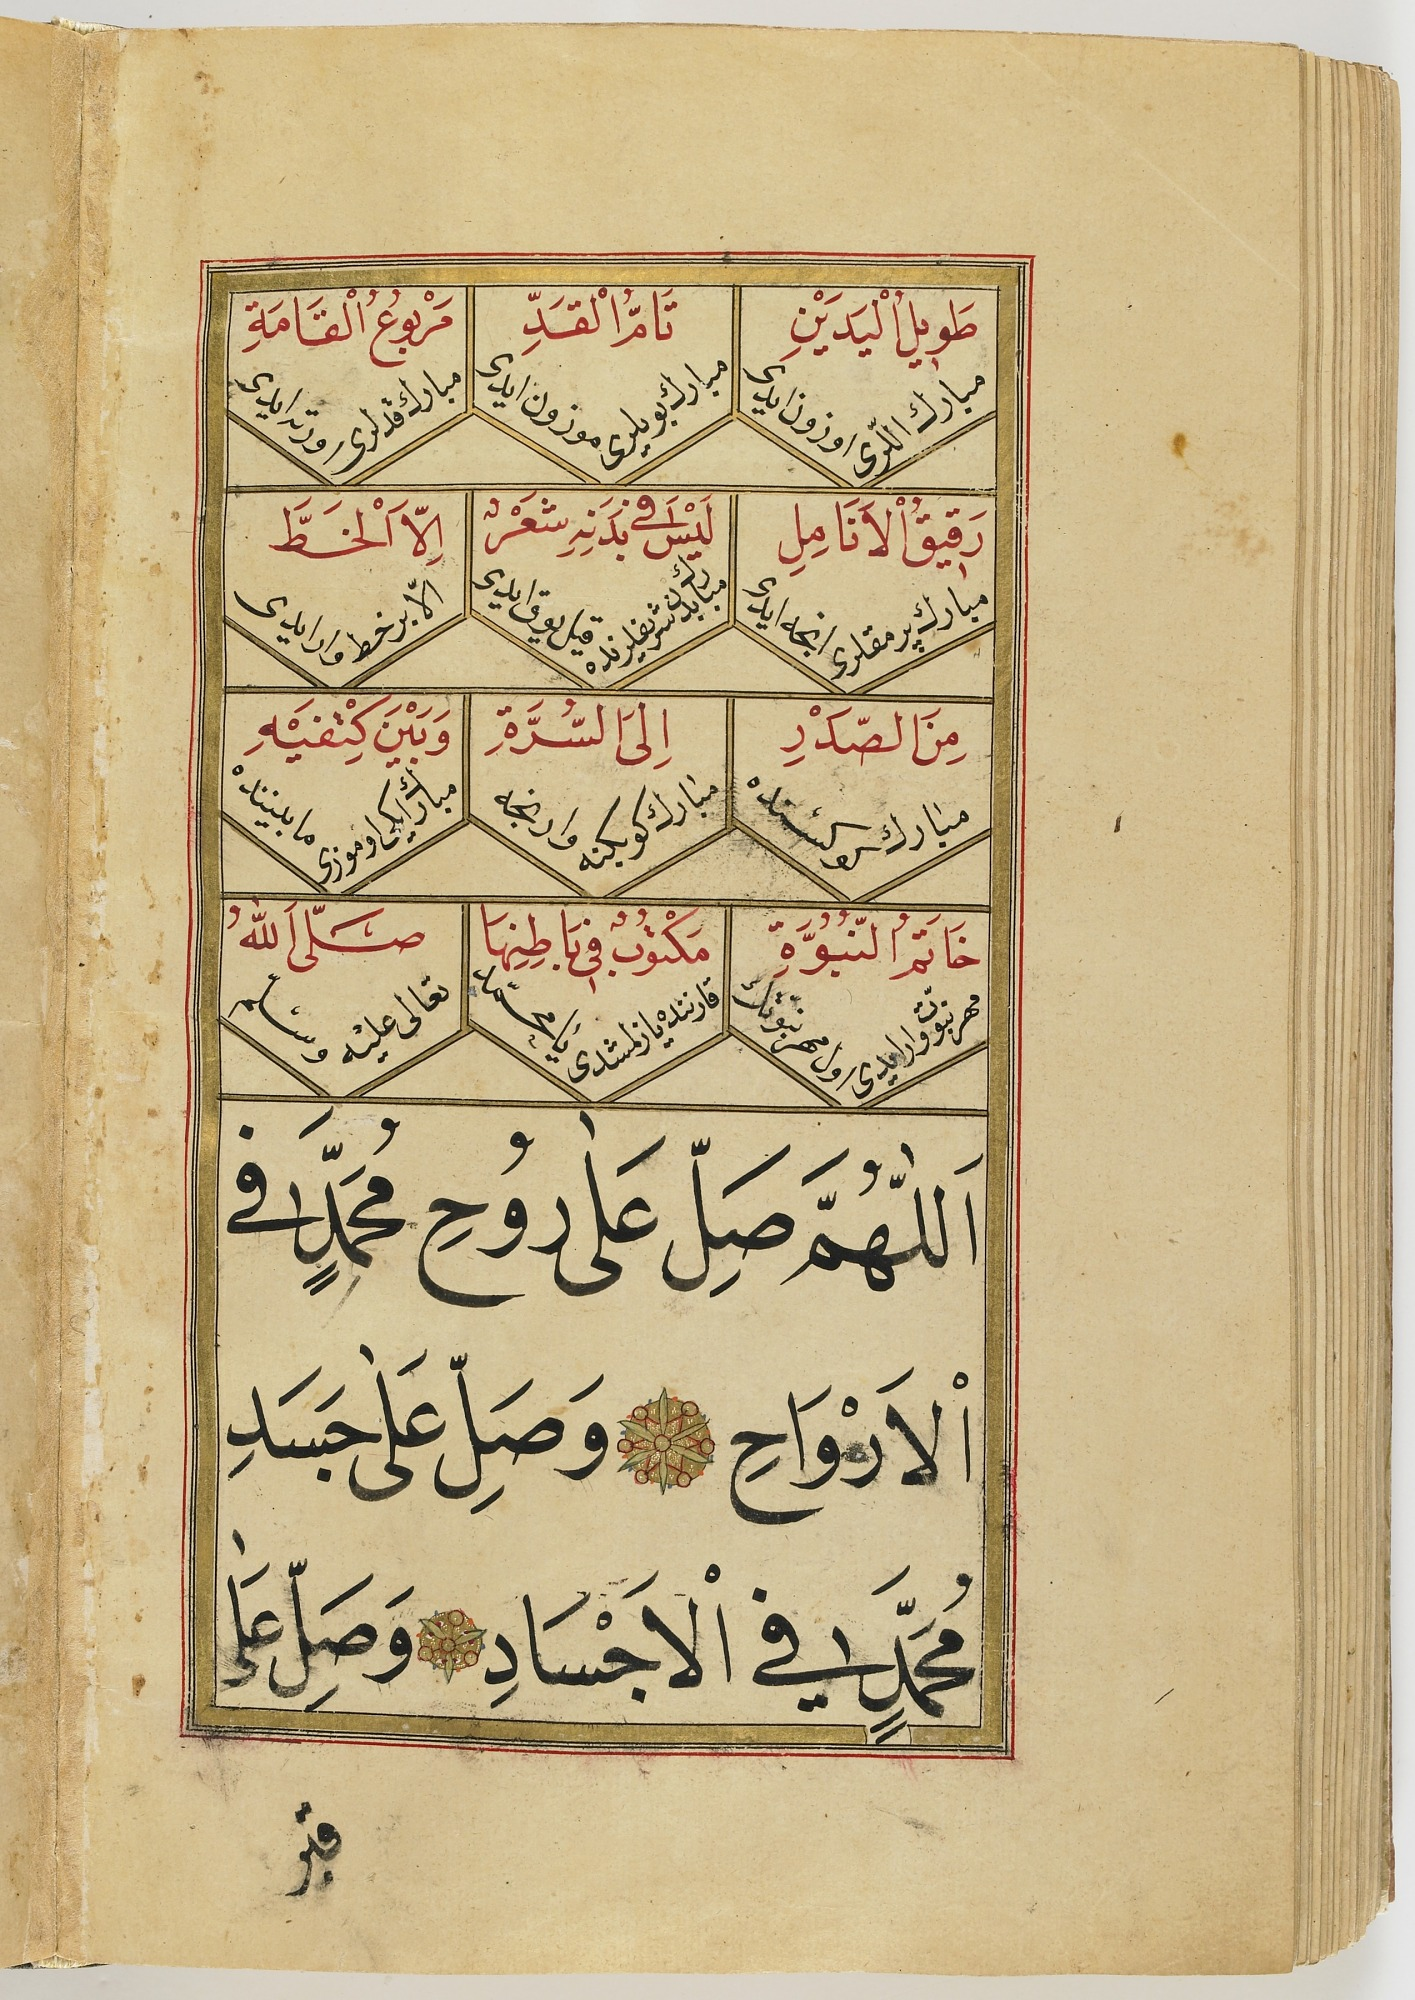 folio 179 verso: Book of prayers